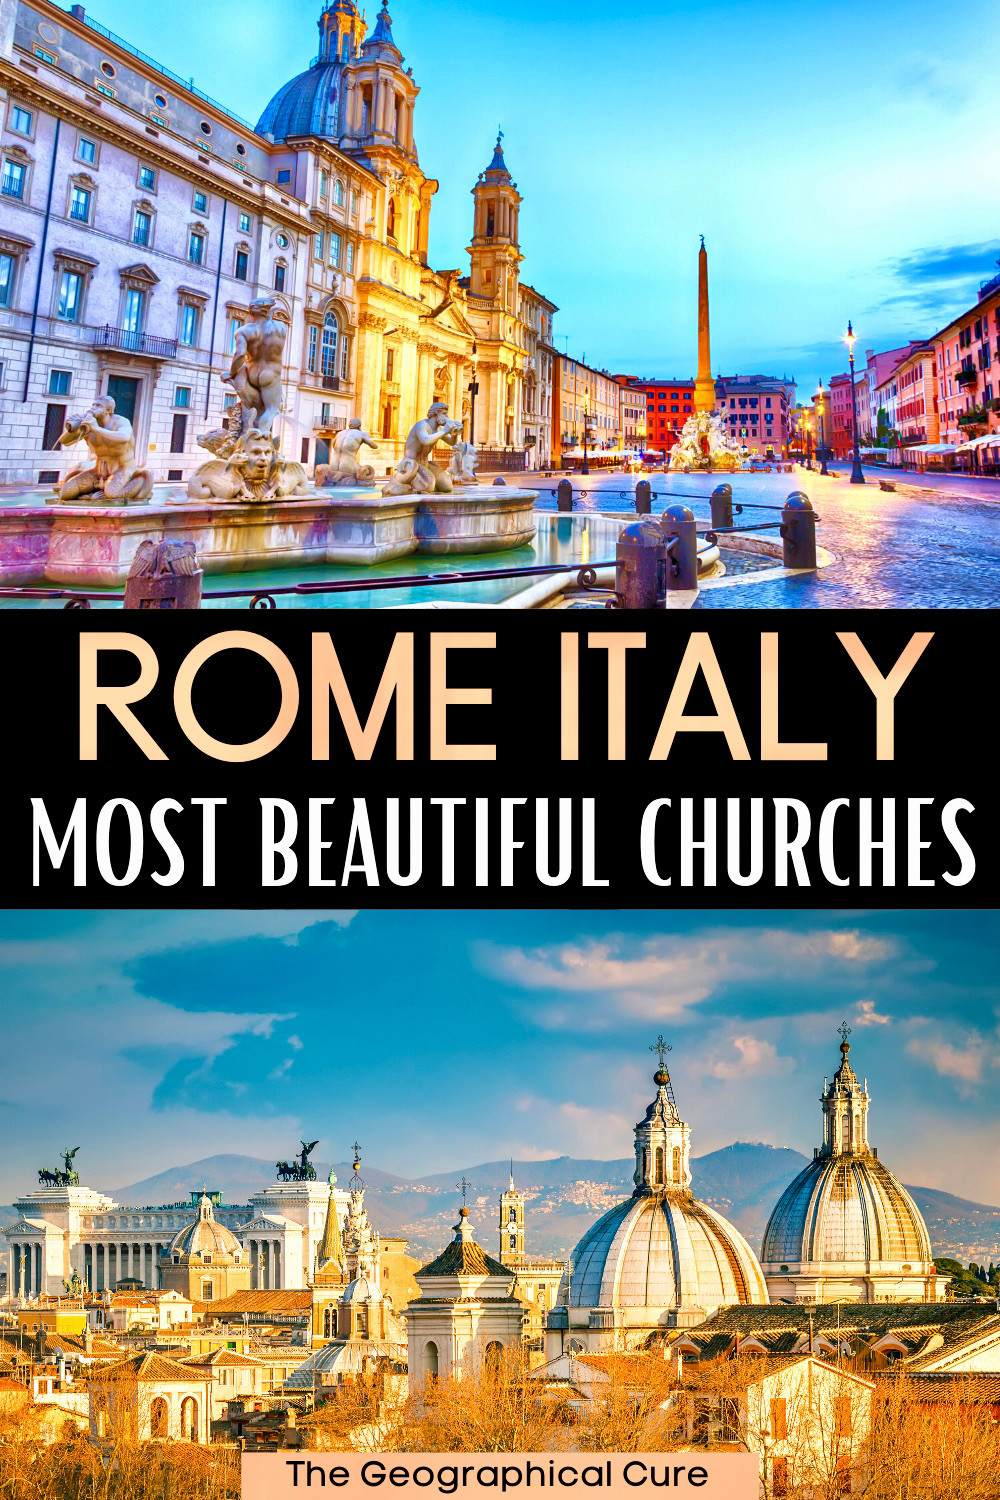 ultimate guide to the most beautiful churches in Rome